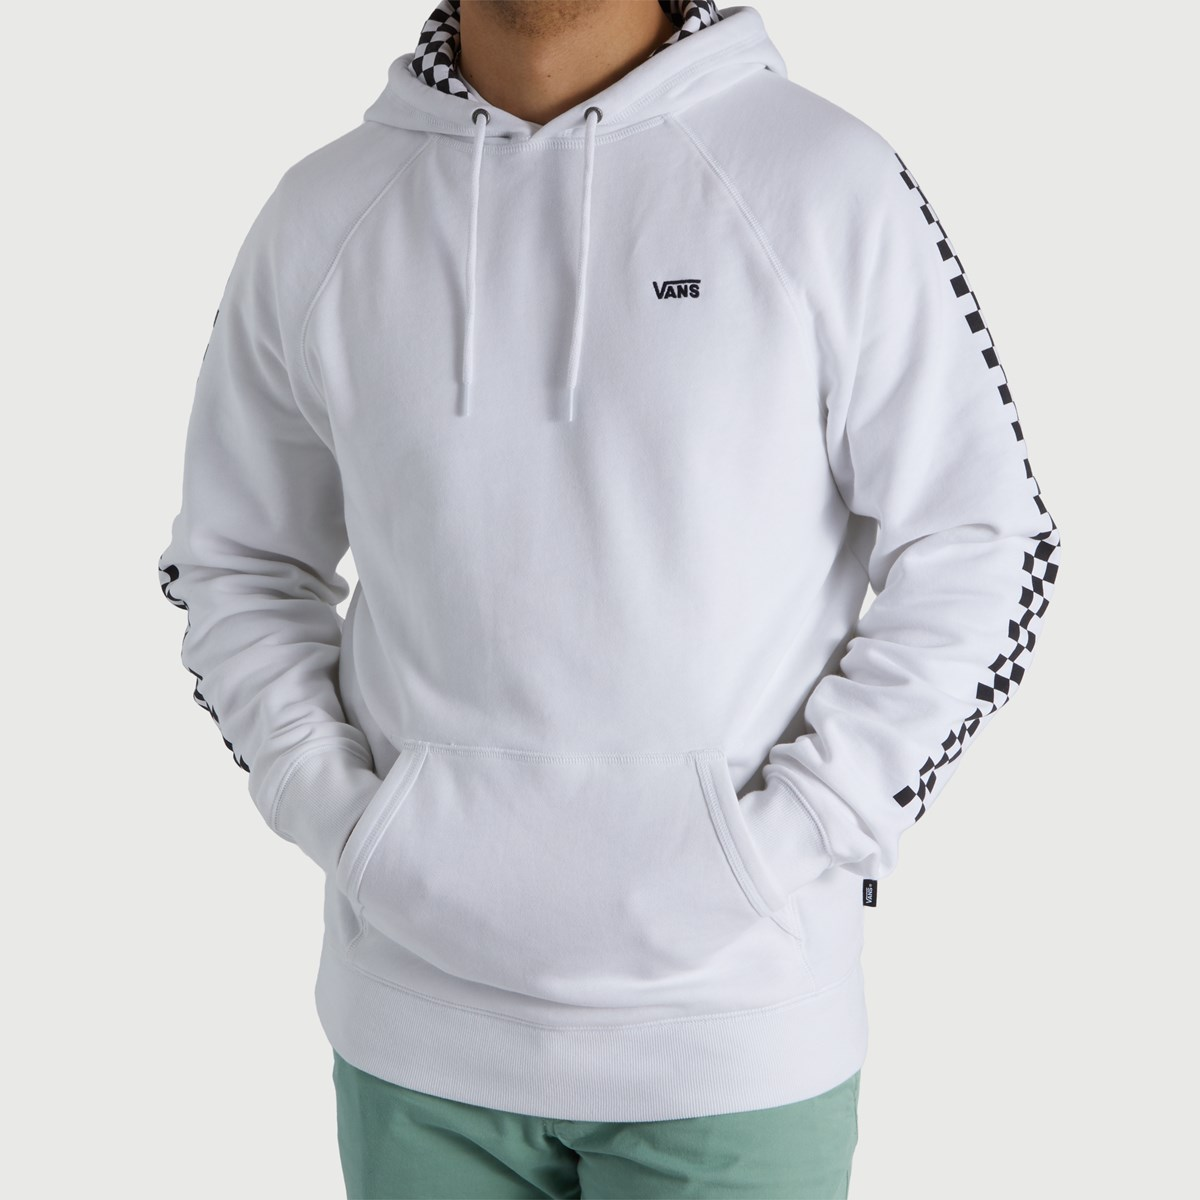 Men's Versa Hoodie in White